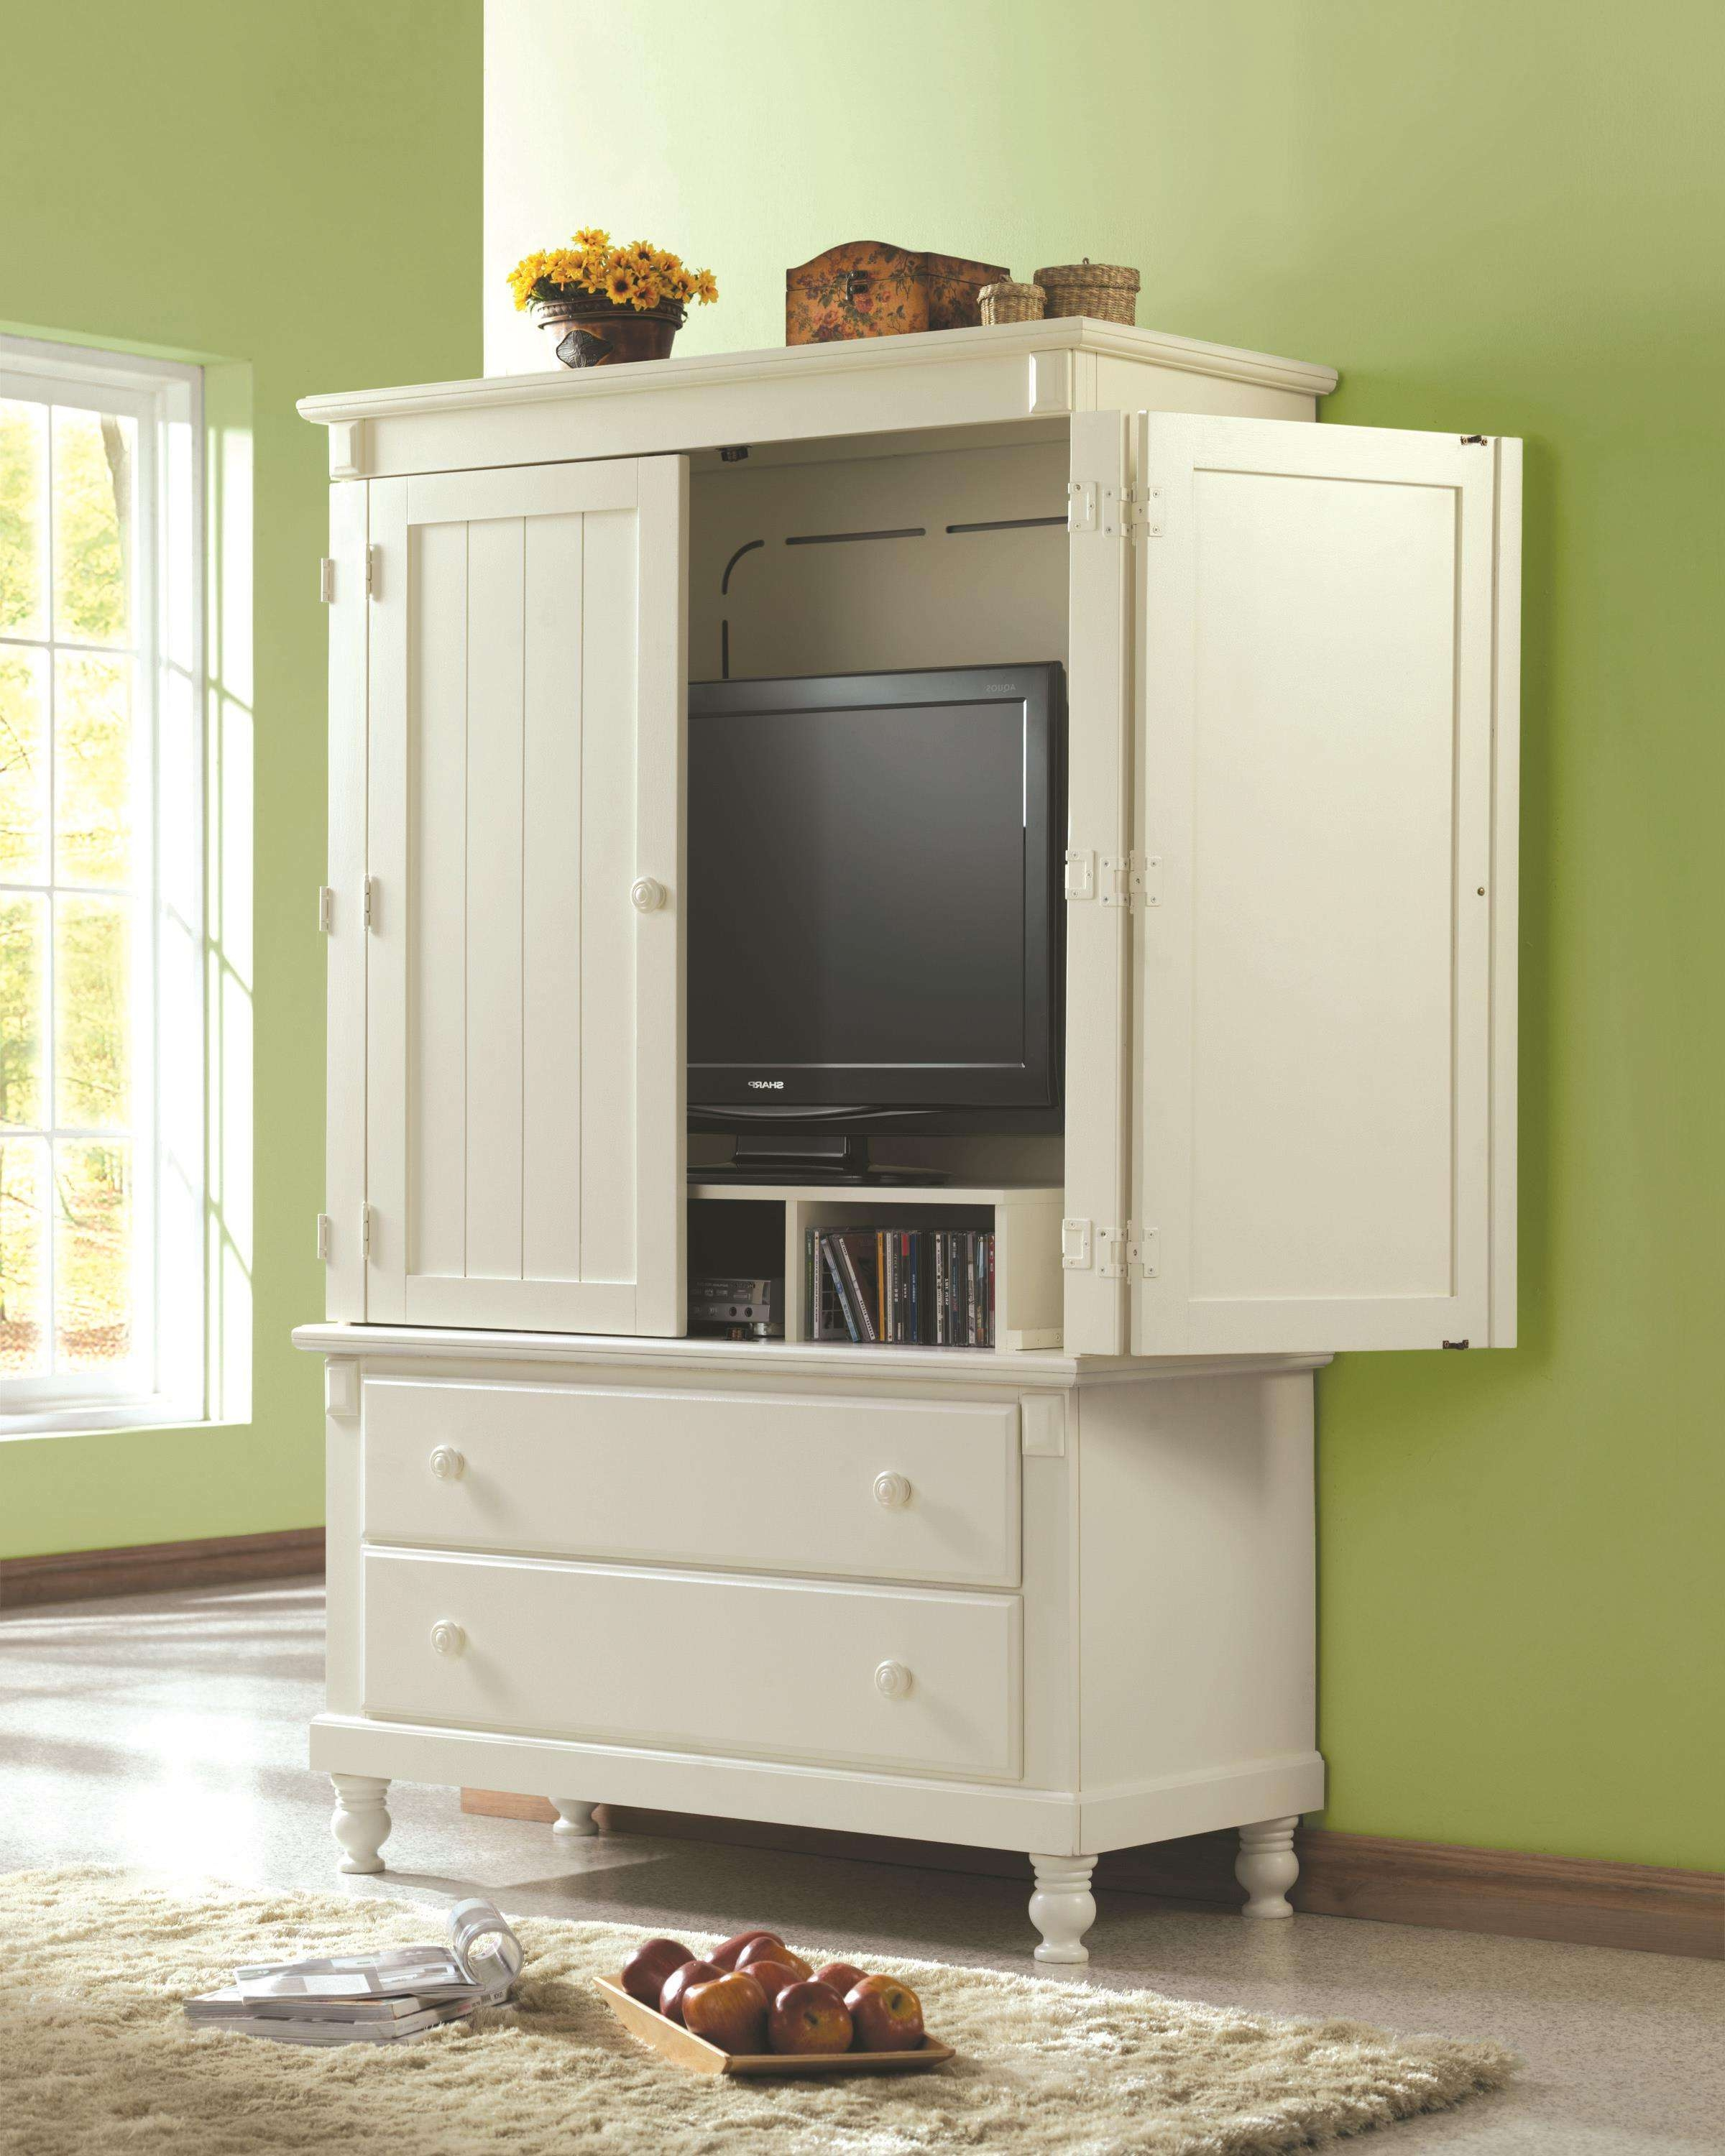 White Wooden Cabinet With Double White Wooden Door Having White Pertaining To Enclosed Tv Cabinets For Flat Screens With Doors (View 7 of 20)